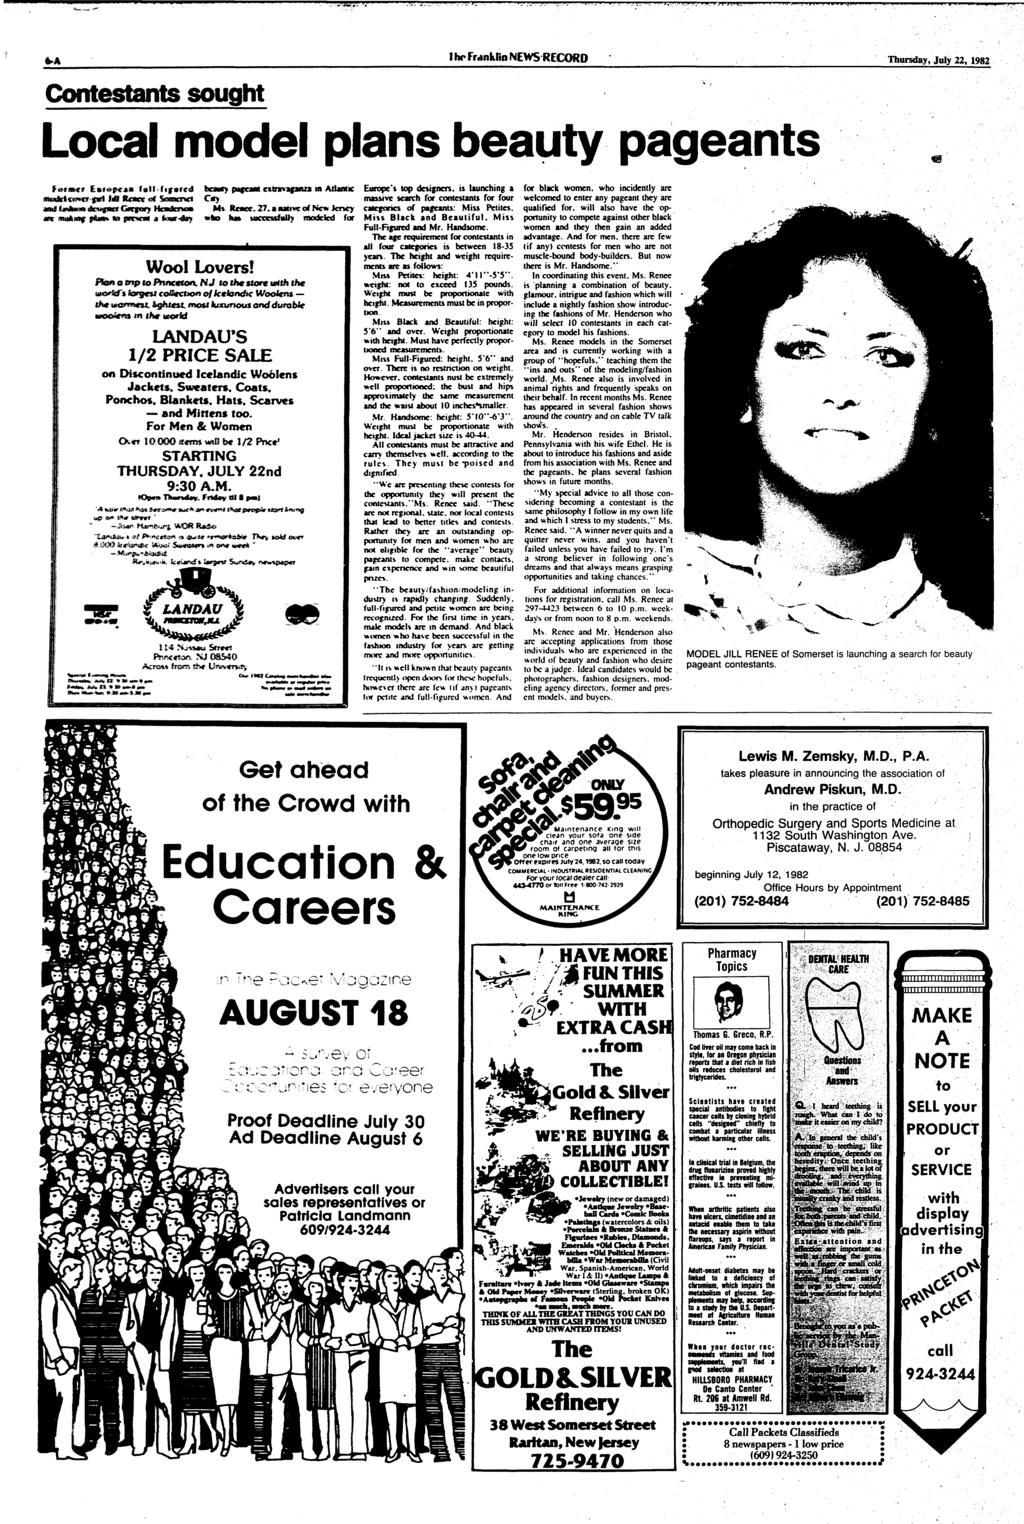 Contestants sought I IN* Franklin NEWS RECORD Thursday, July 22, 1982 Local model plans beauty pageants h»t*>p**m fall fifntcd J«S fumoc «* Seeaortei nwfcibf p&m* M pntiem a <*wr»drj beaut?